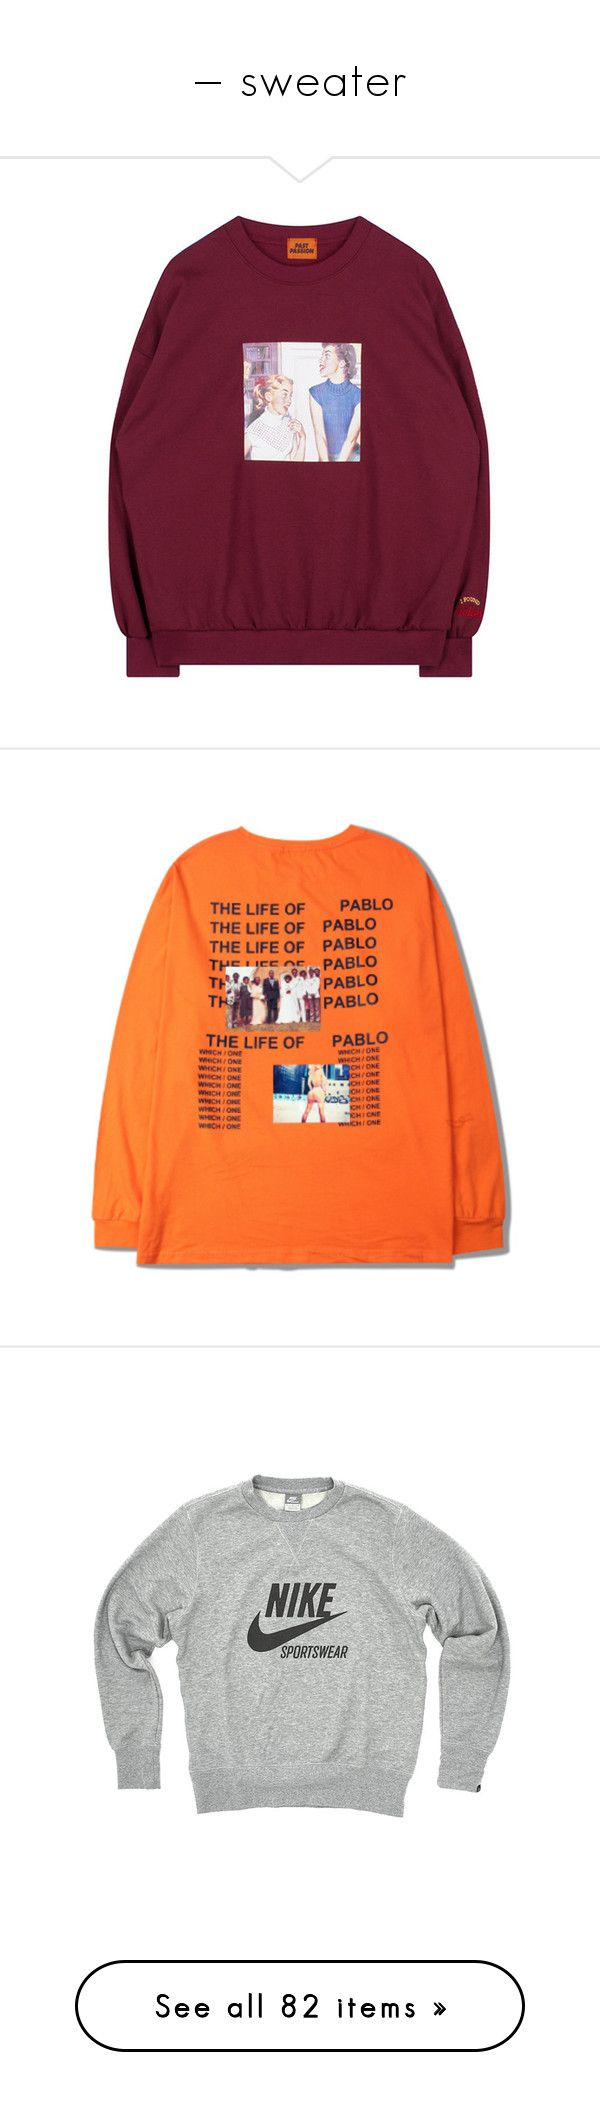 """— sweater"" by dean-official ❤ liked on Polyvore featuring tops, t-shirts, shirts, items, jumper, long sleeve shirts, orange long sleeve shirt, longsleeve t shirts, long sleeve t shirts and orange long sleeve t shirt"